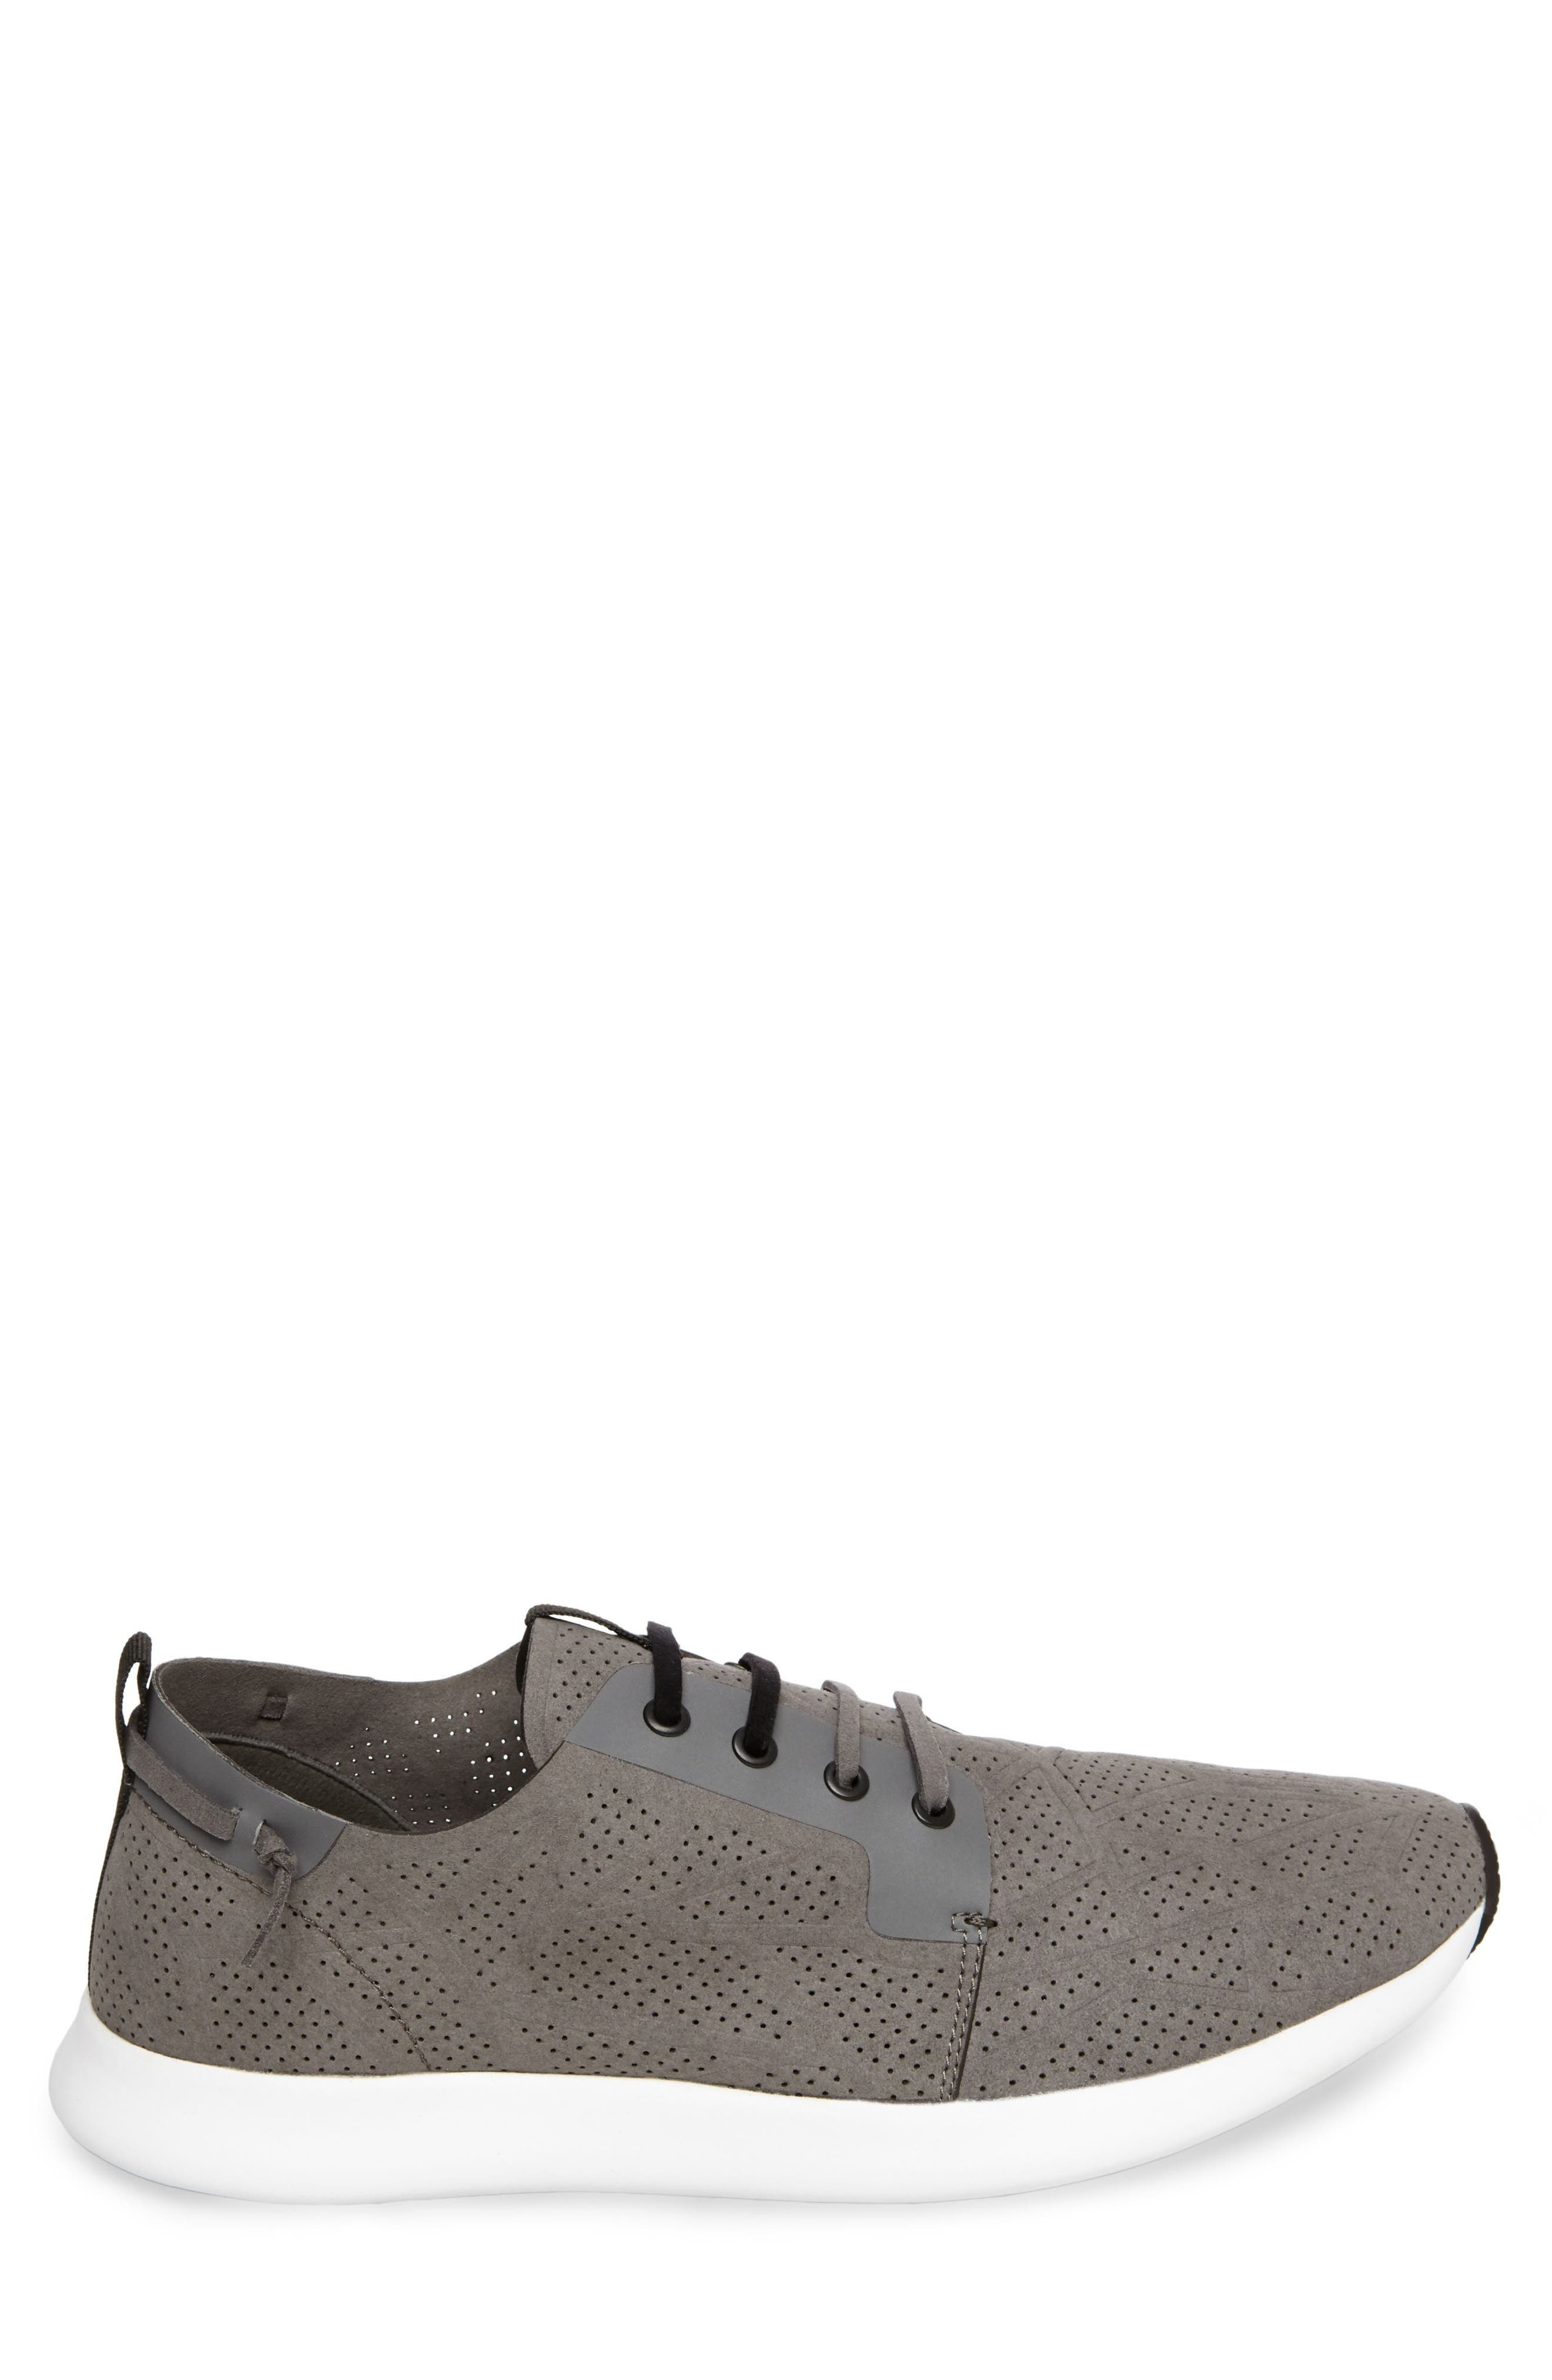 Batali Perforated Sneaker,                             Alternate thumbnail 3, color,                             Grey